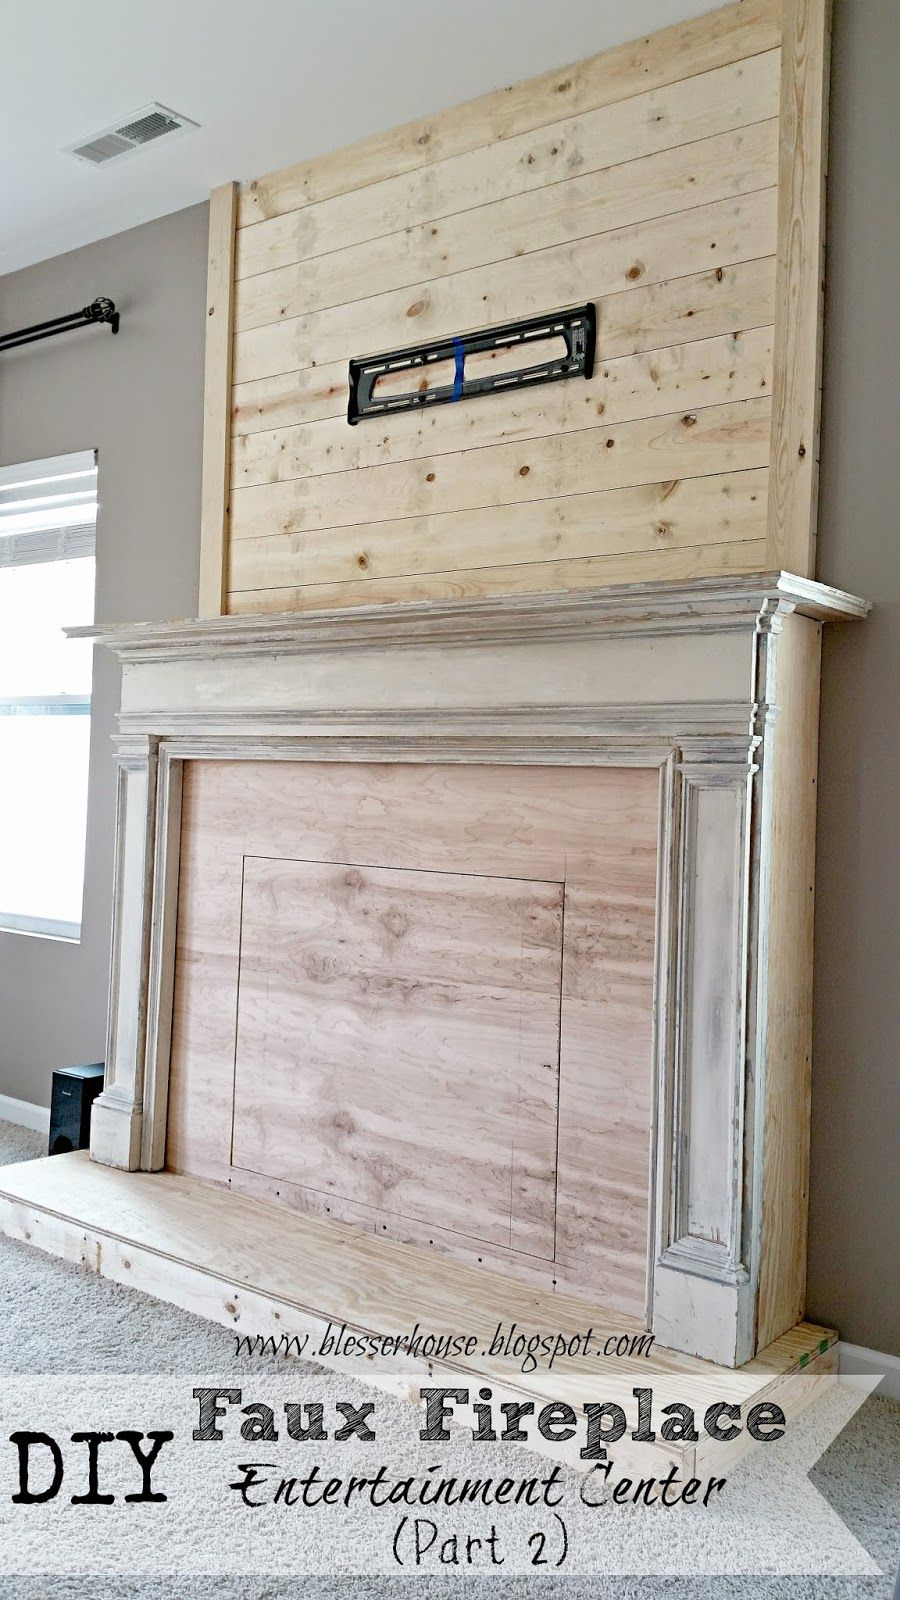 Fausse Cheminee Carton Diy Faux Fireplace Entertainment Center | Diy | Home